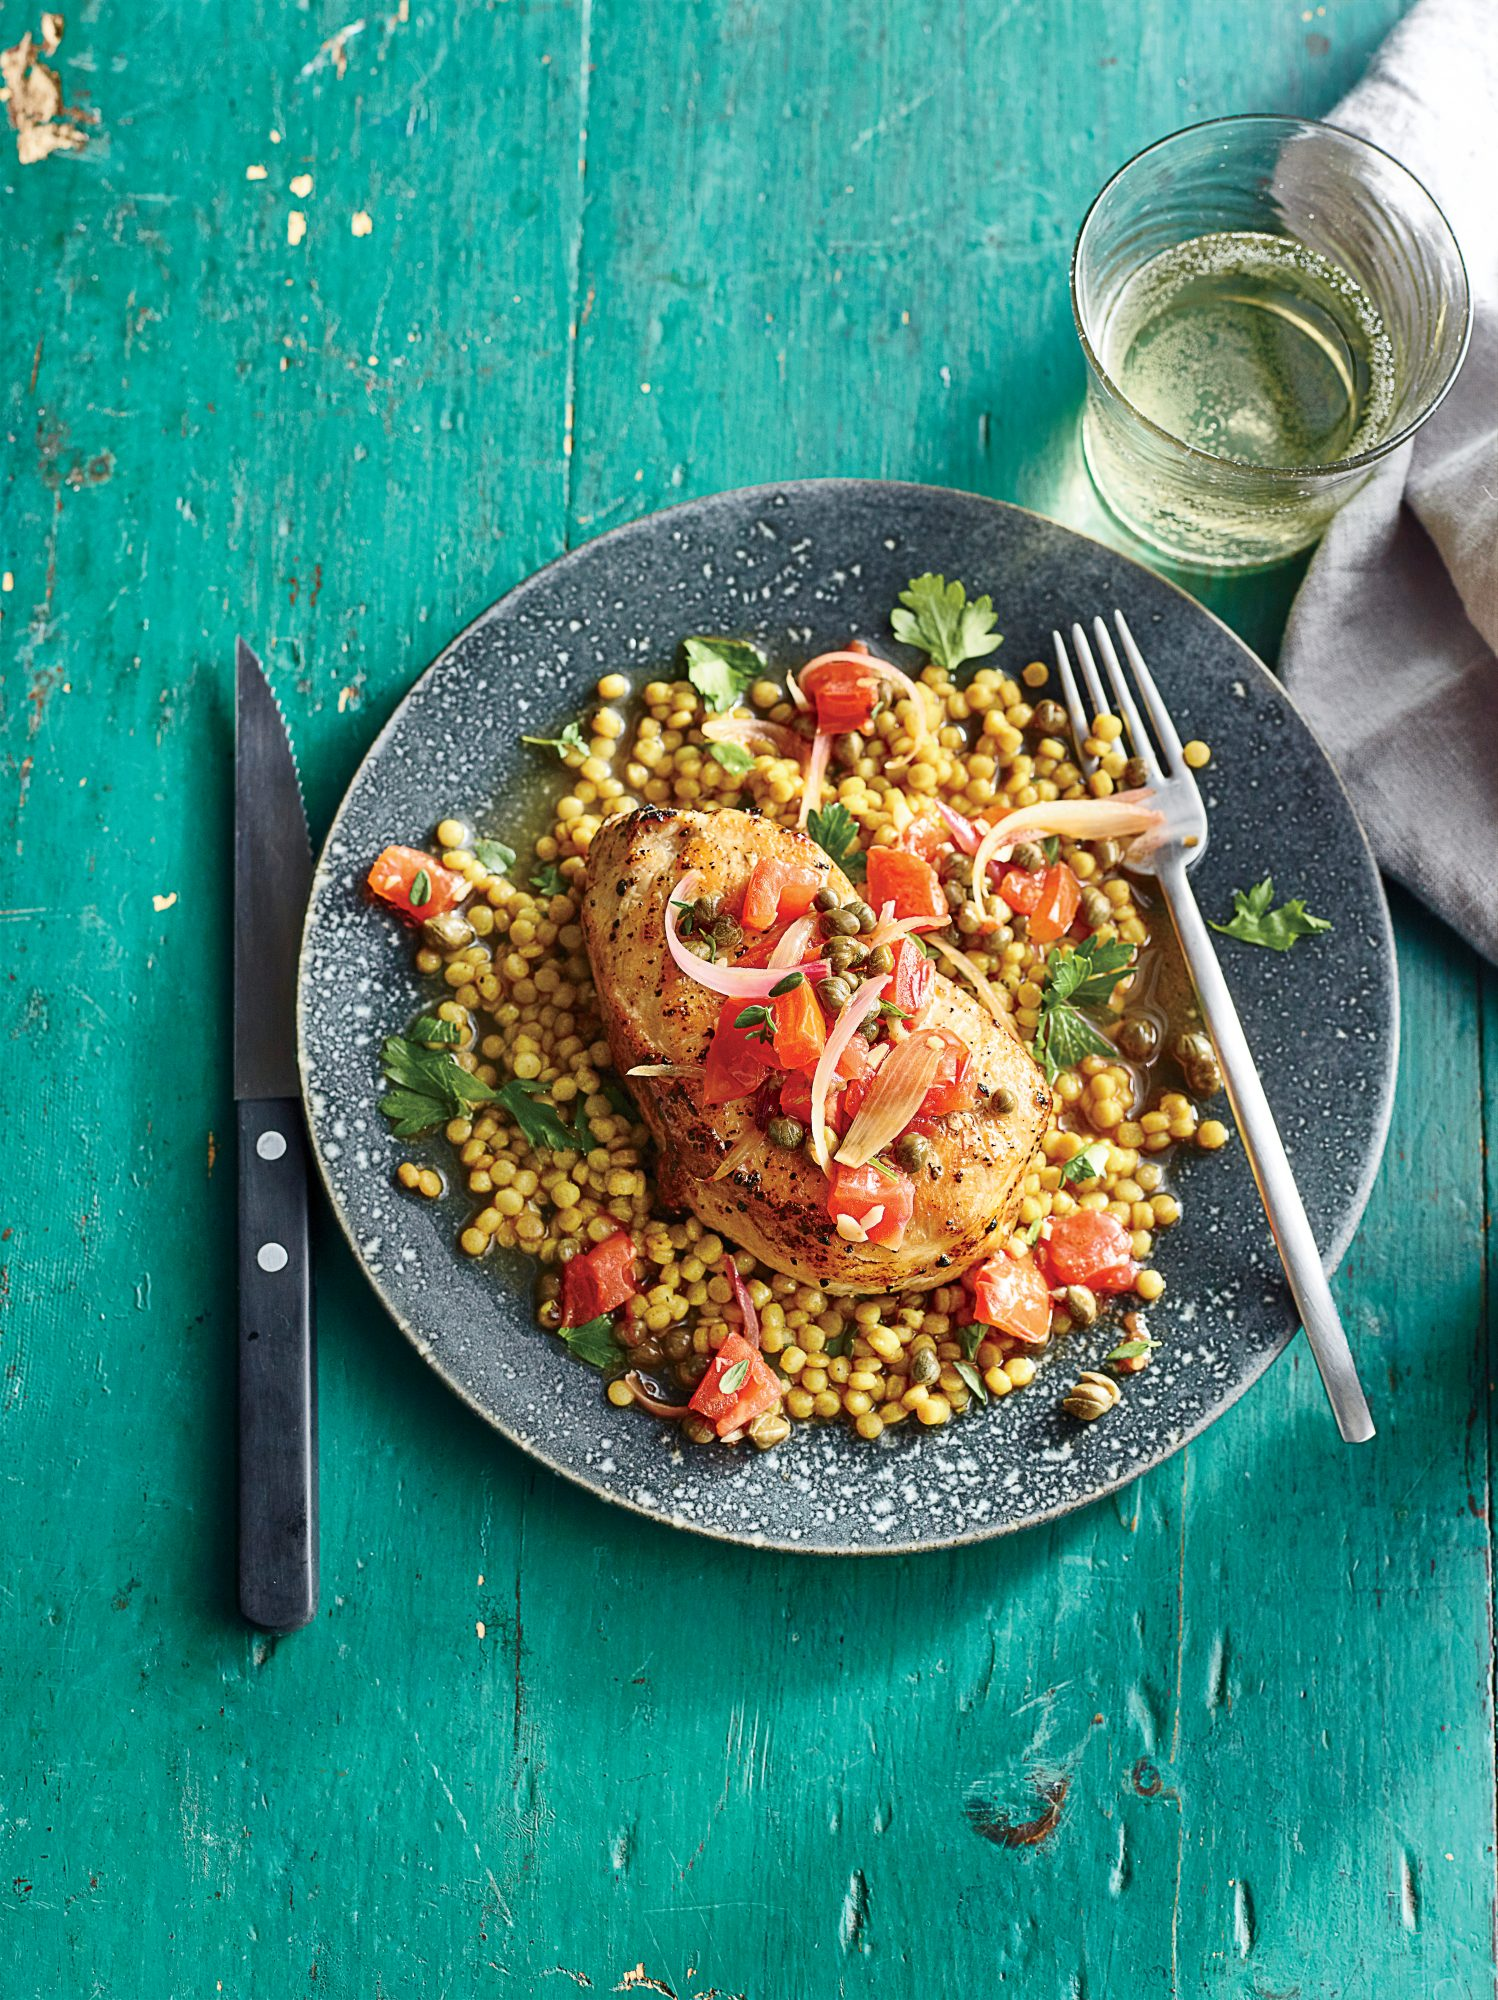 Pork Chops and Couscous with Tomato-Caper Sauce